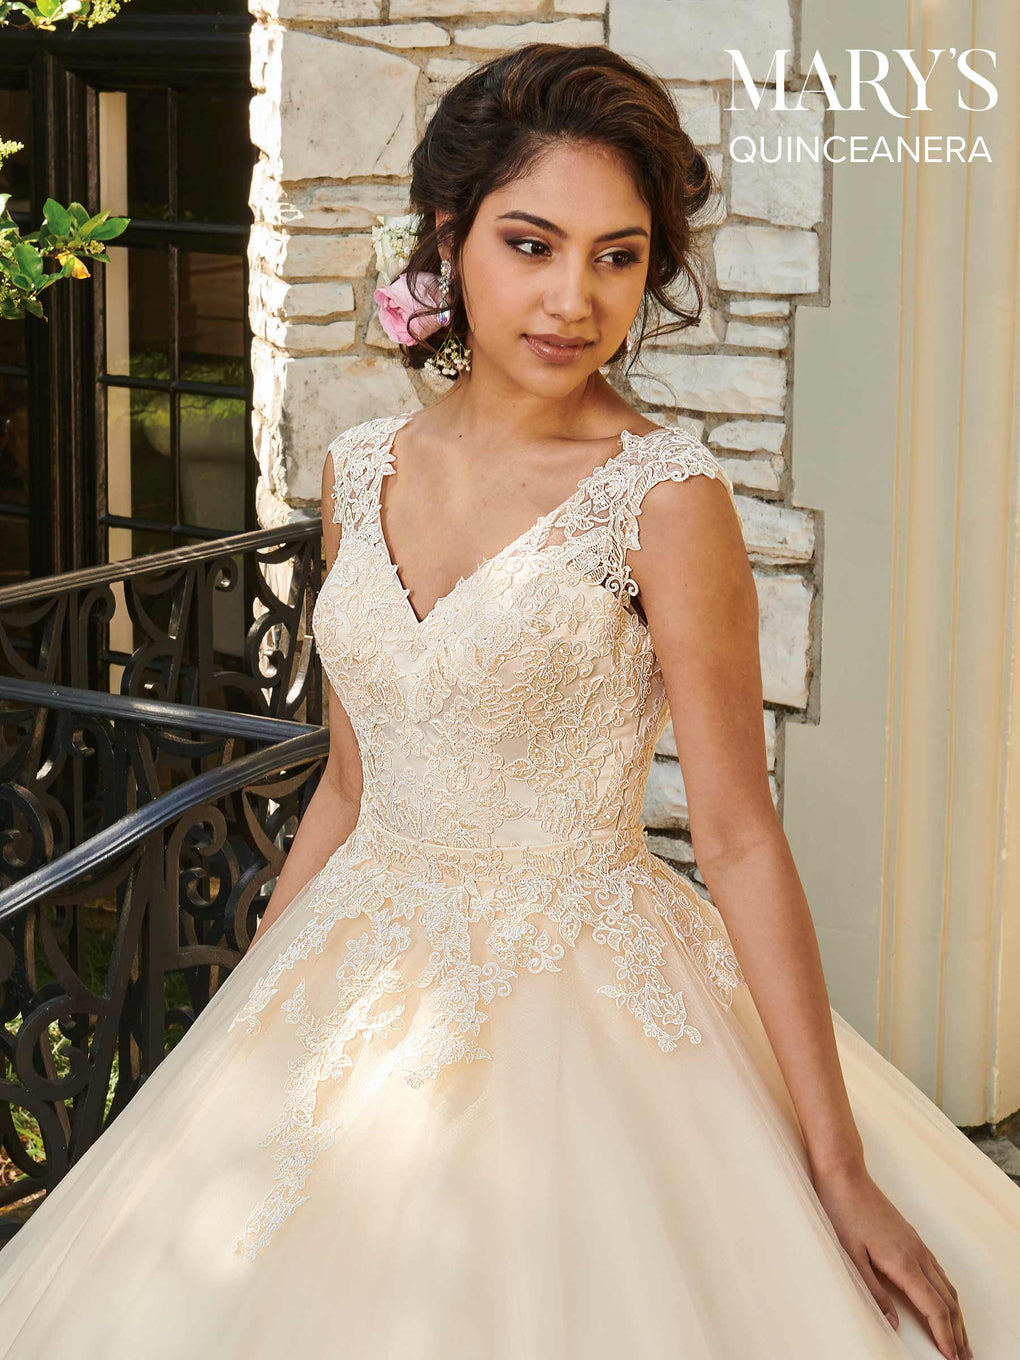 Marys Quinceanera Dresses in Champagne, Coral, or White Color